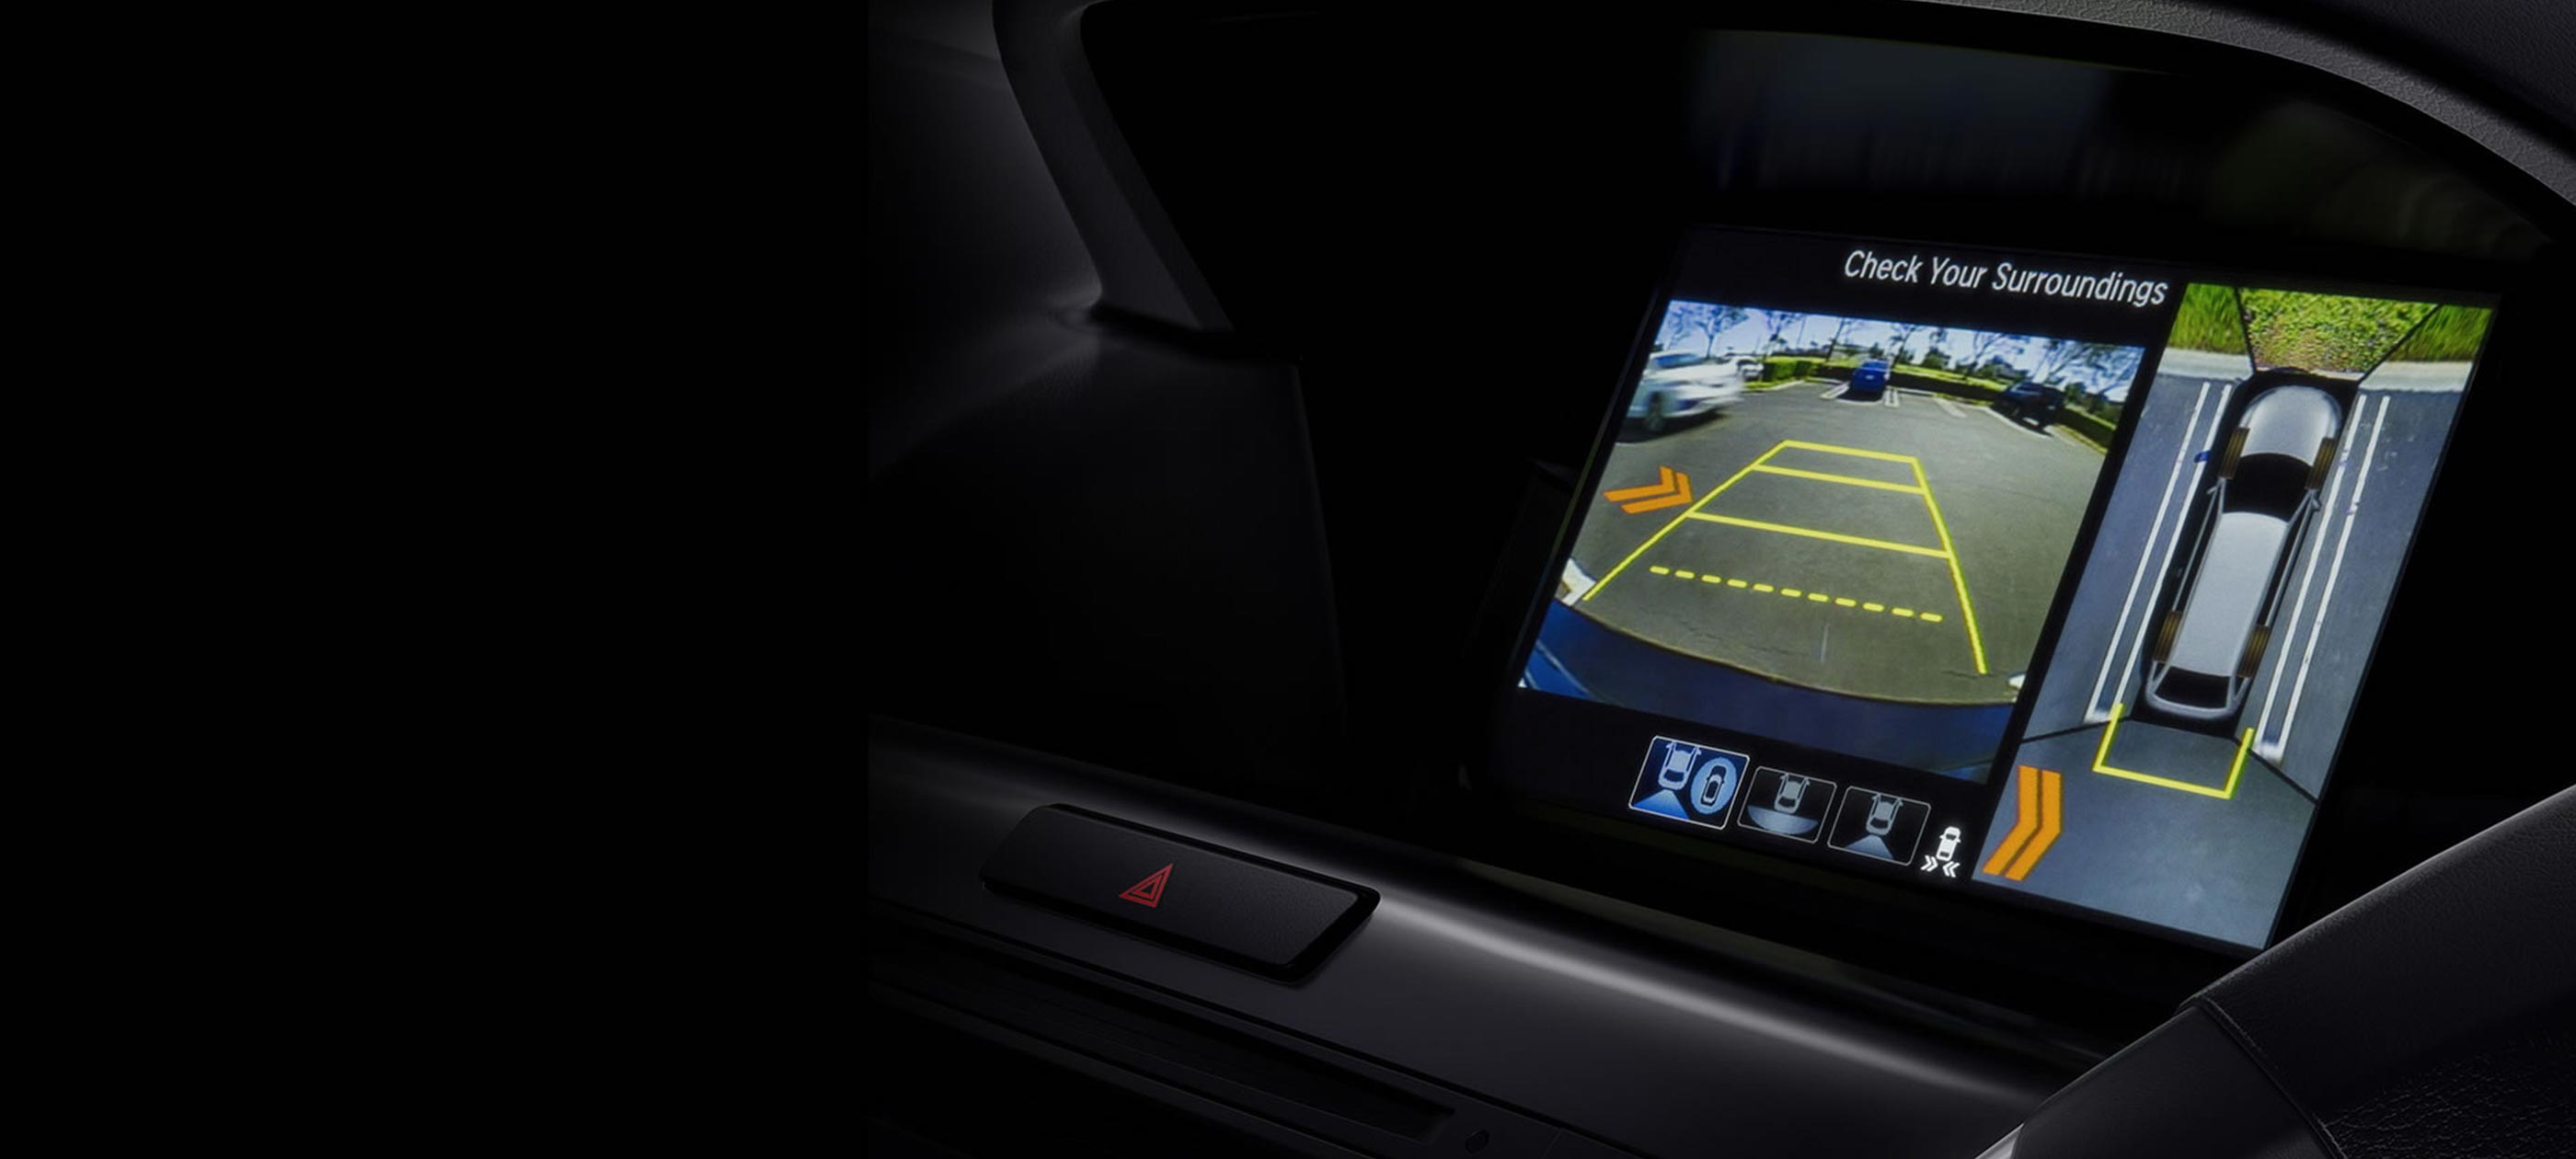 Surround View Camera System